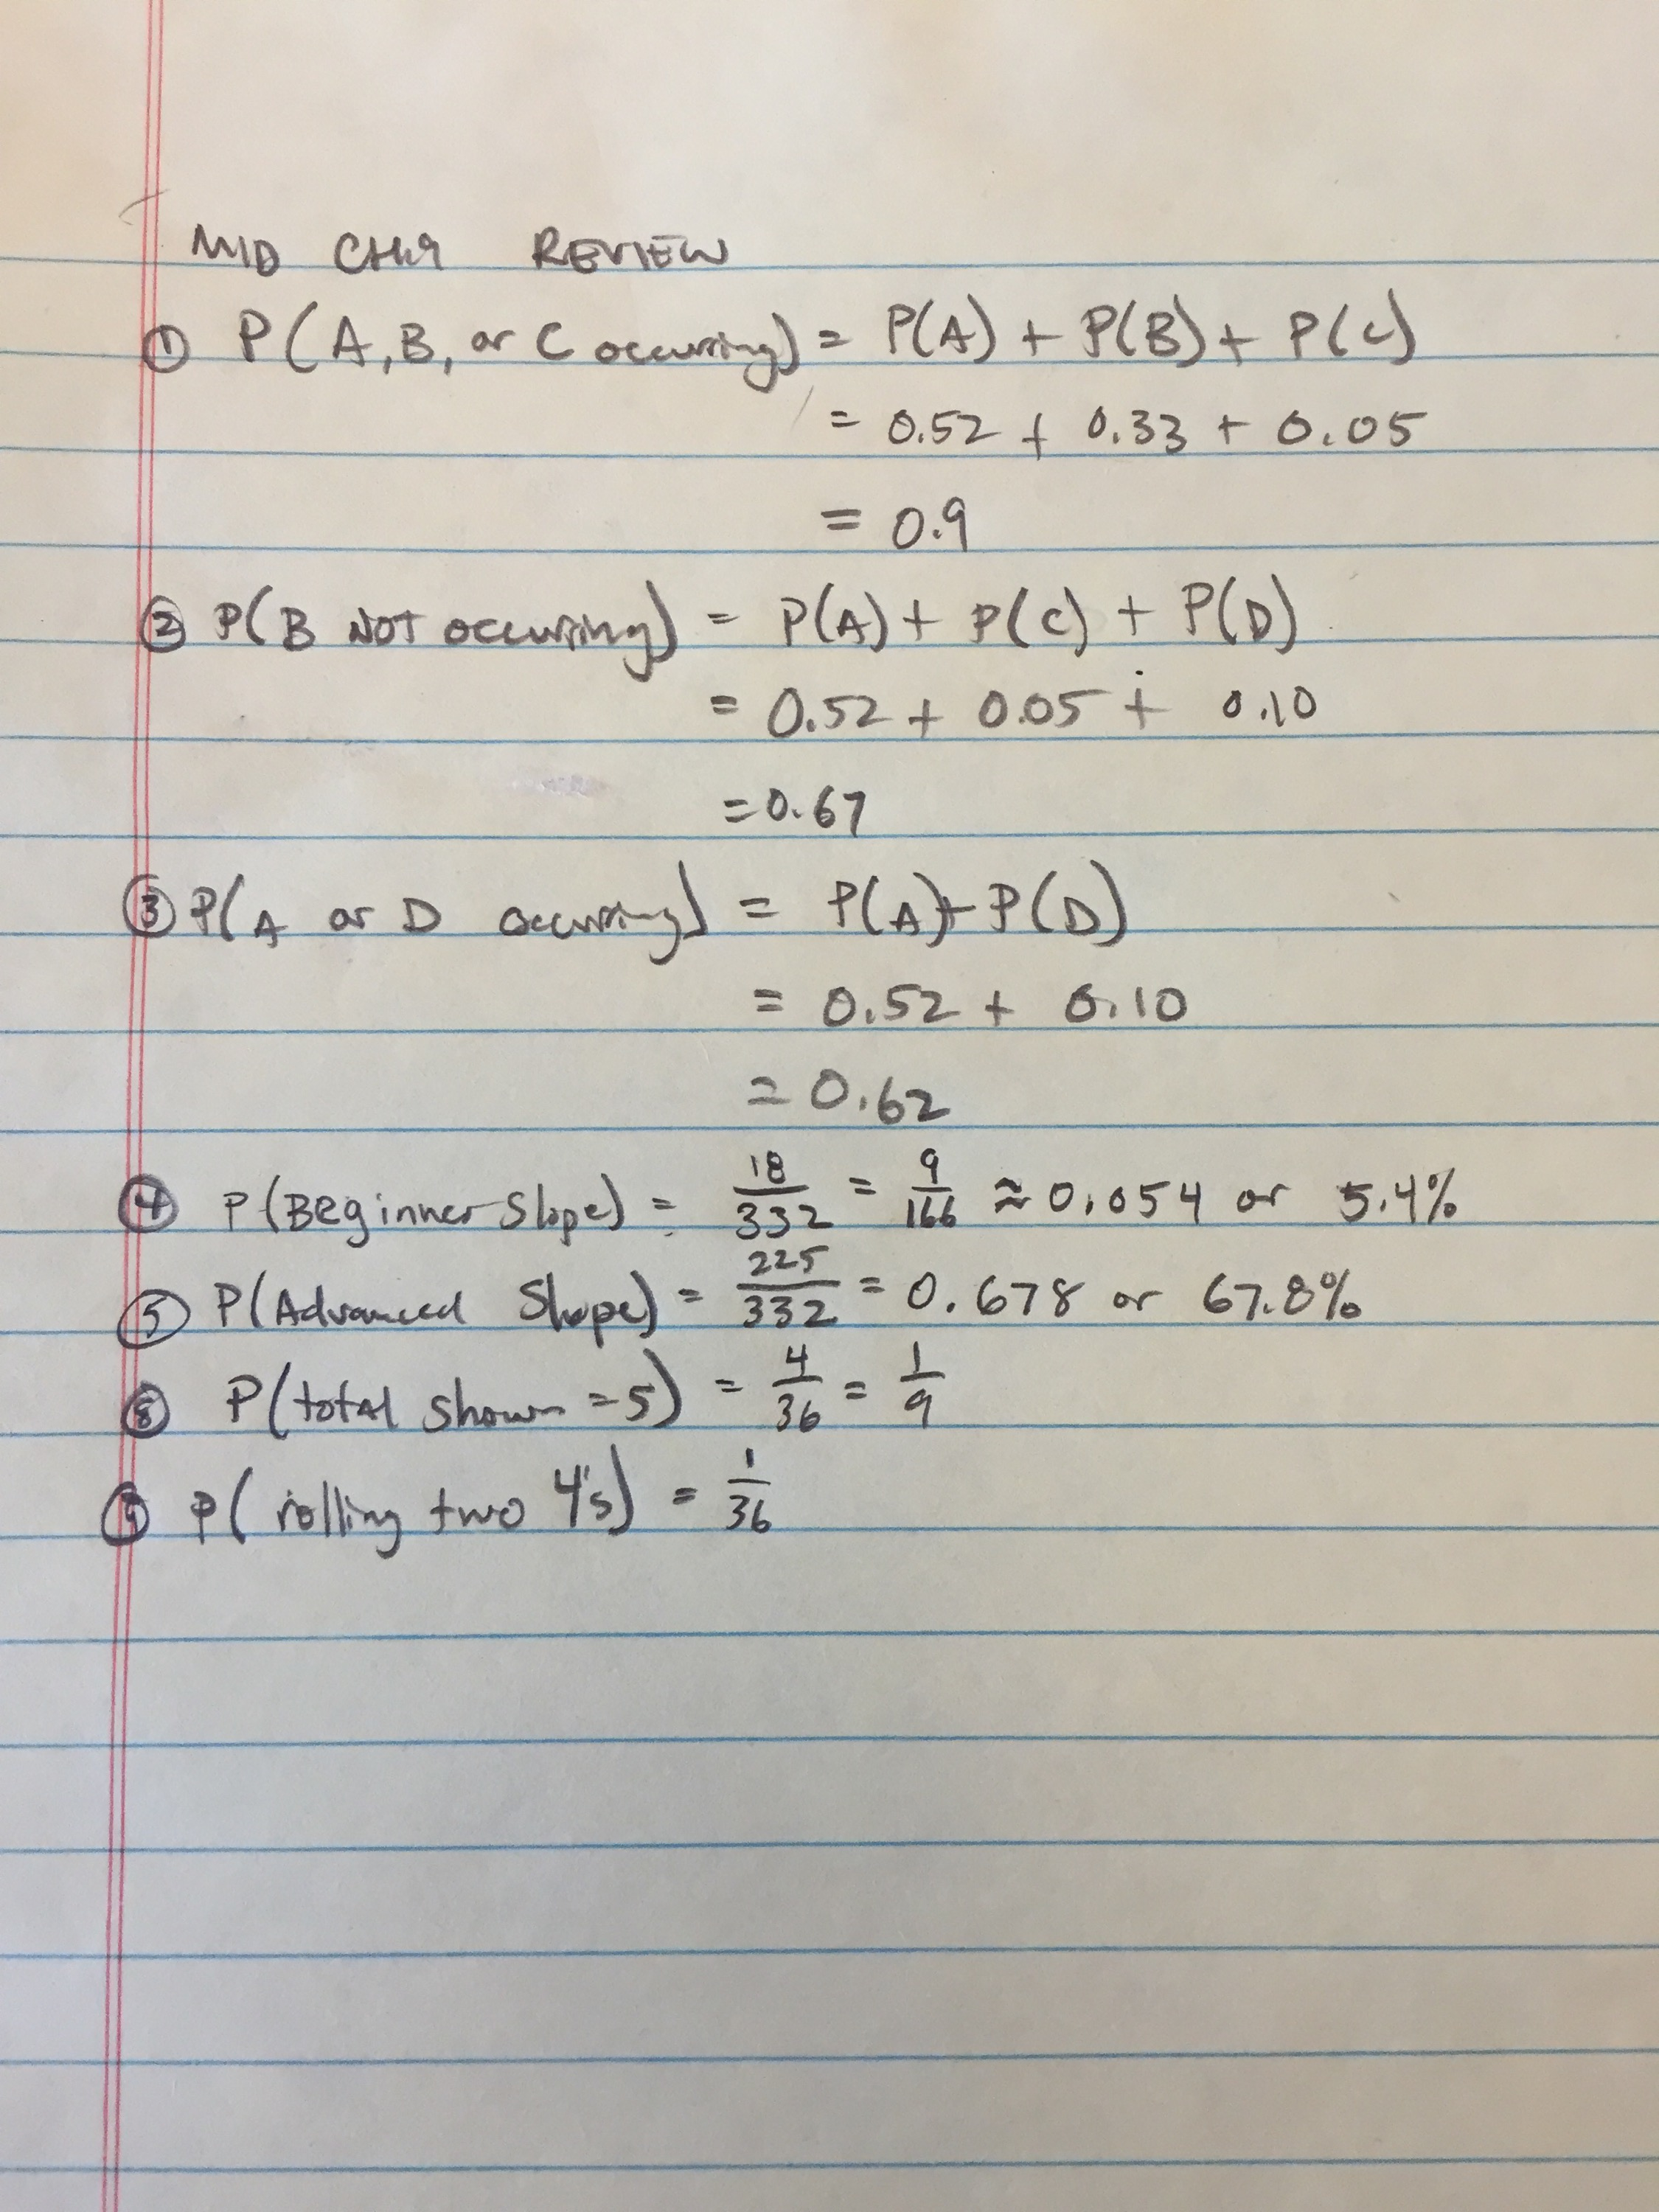 8th Grade Mid Ch 9 Review Sheet Answers